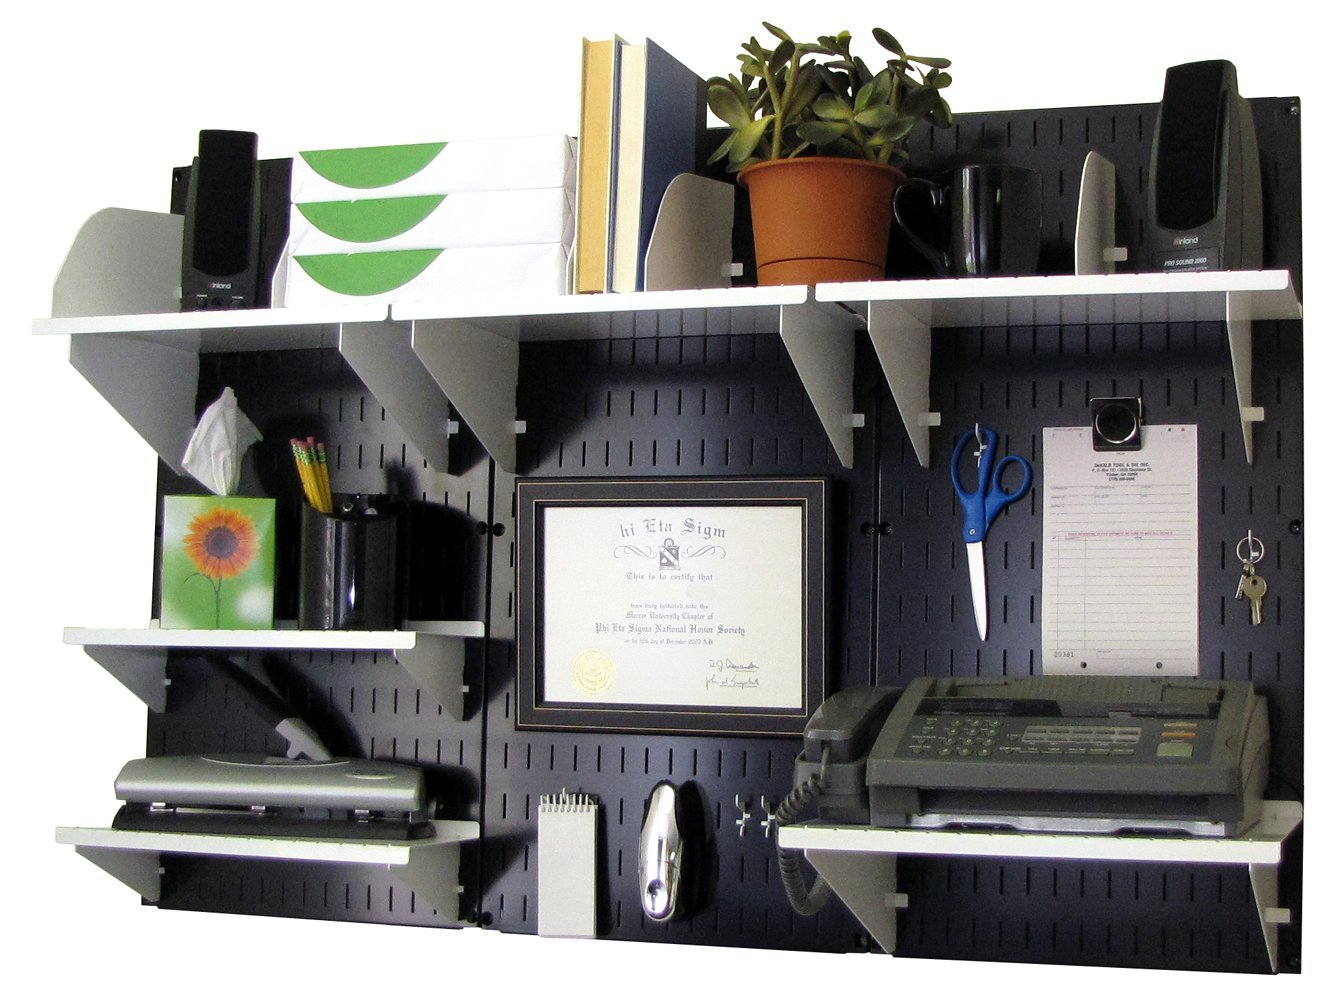 Wall Control Office Organizer Unit Wall Mounted Office Desk Storage and Organization Kit Black Wall Panels and White Accessories by Wall Control